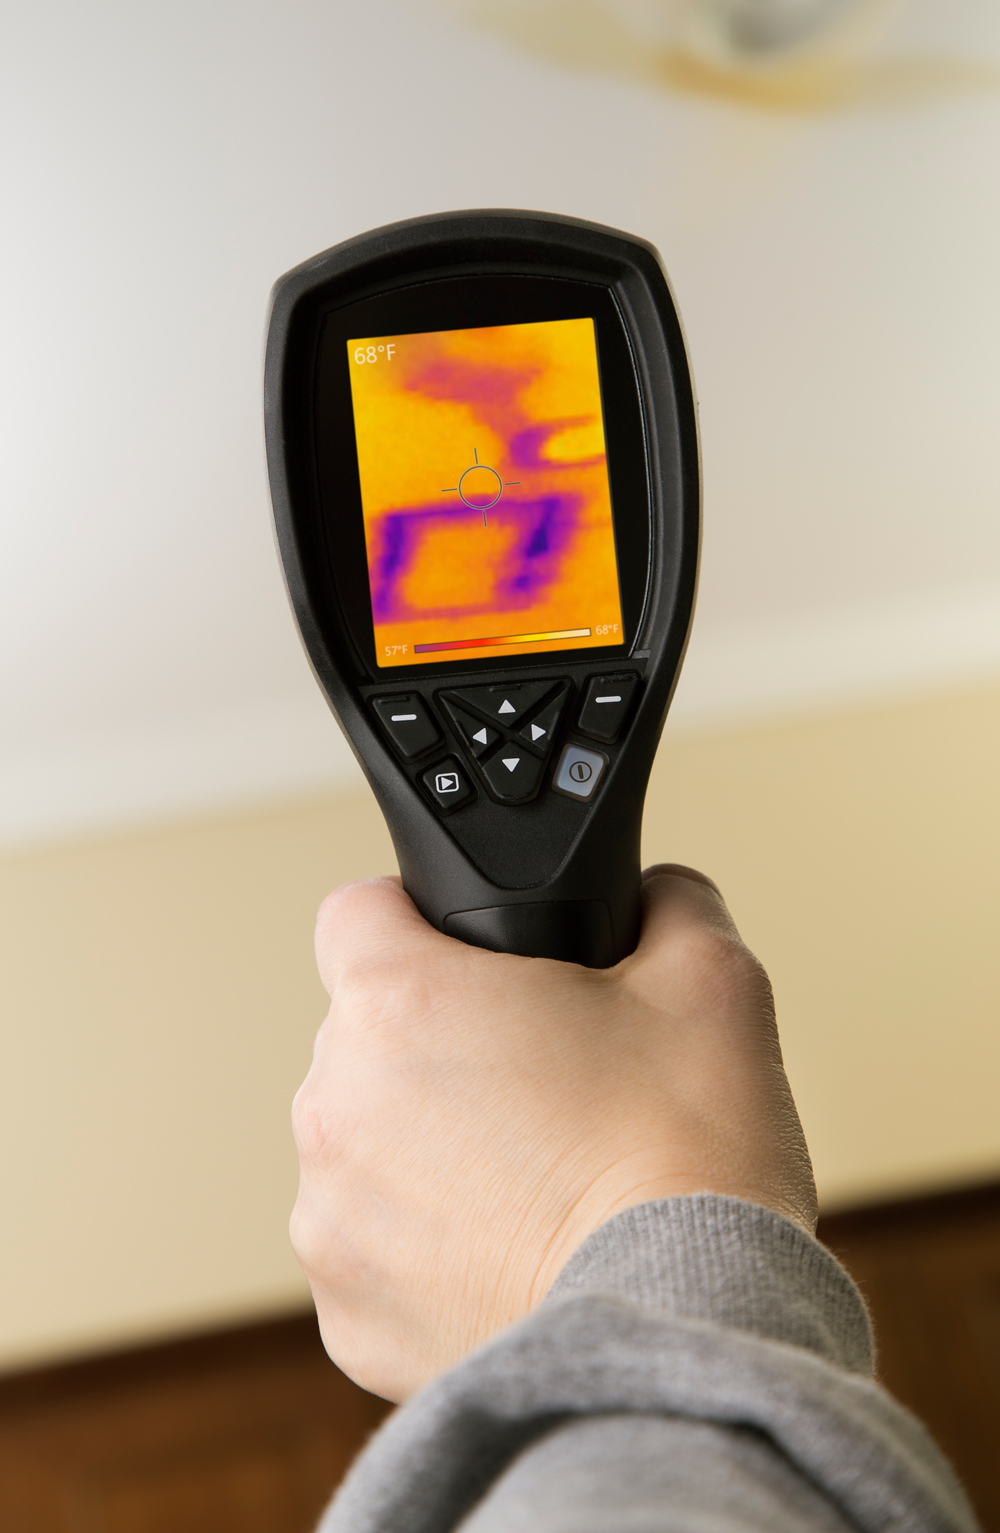 Roof inspection using infrared thermal imaging device